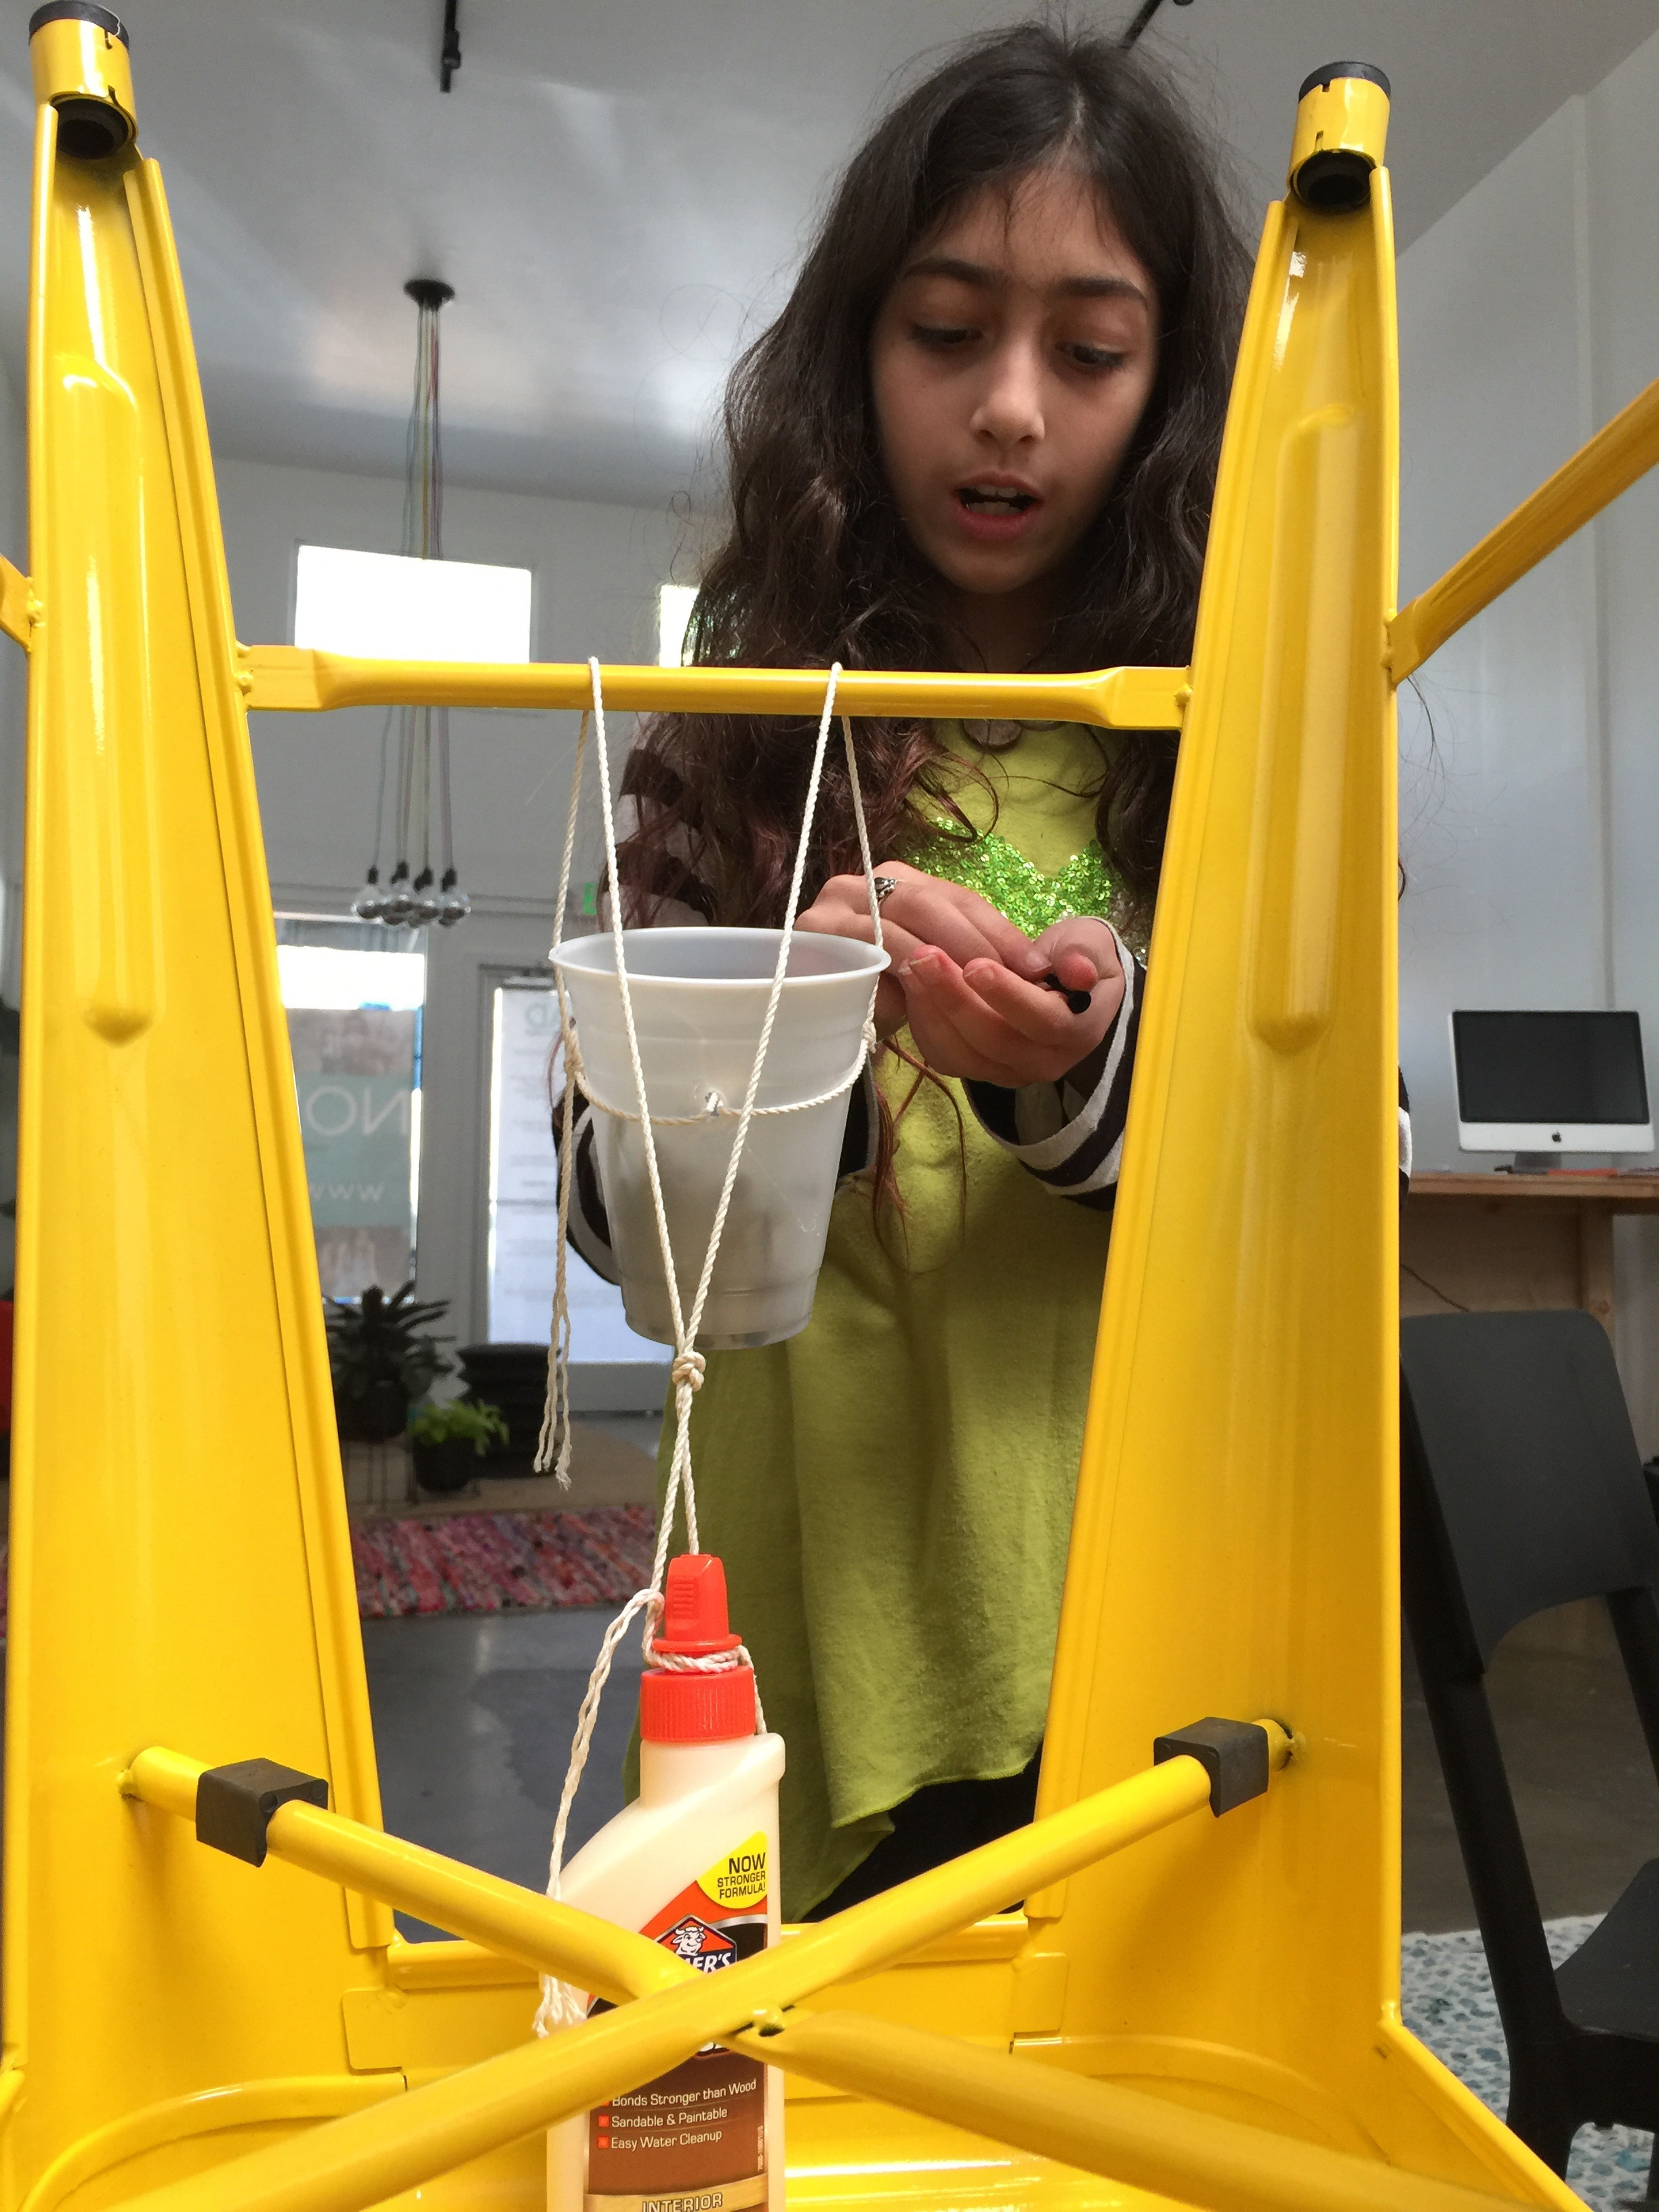 Pulley launch prototyping